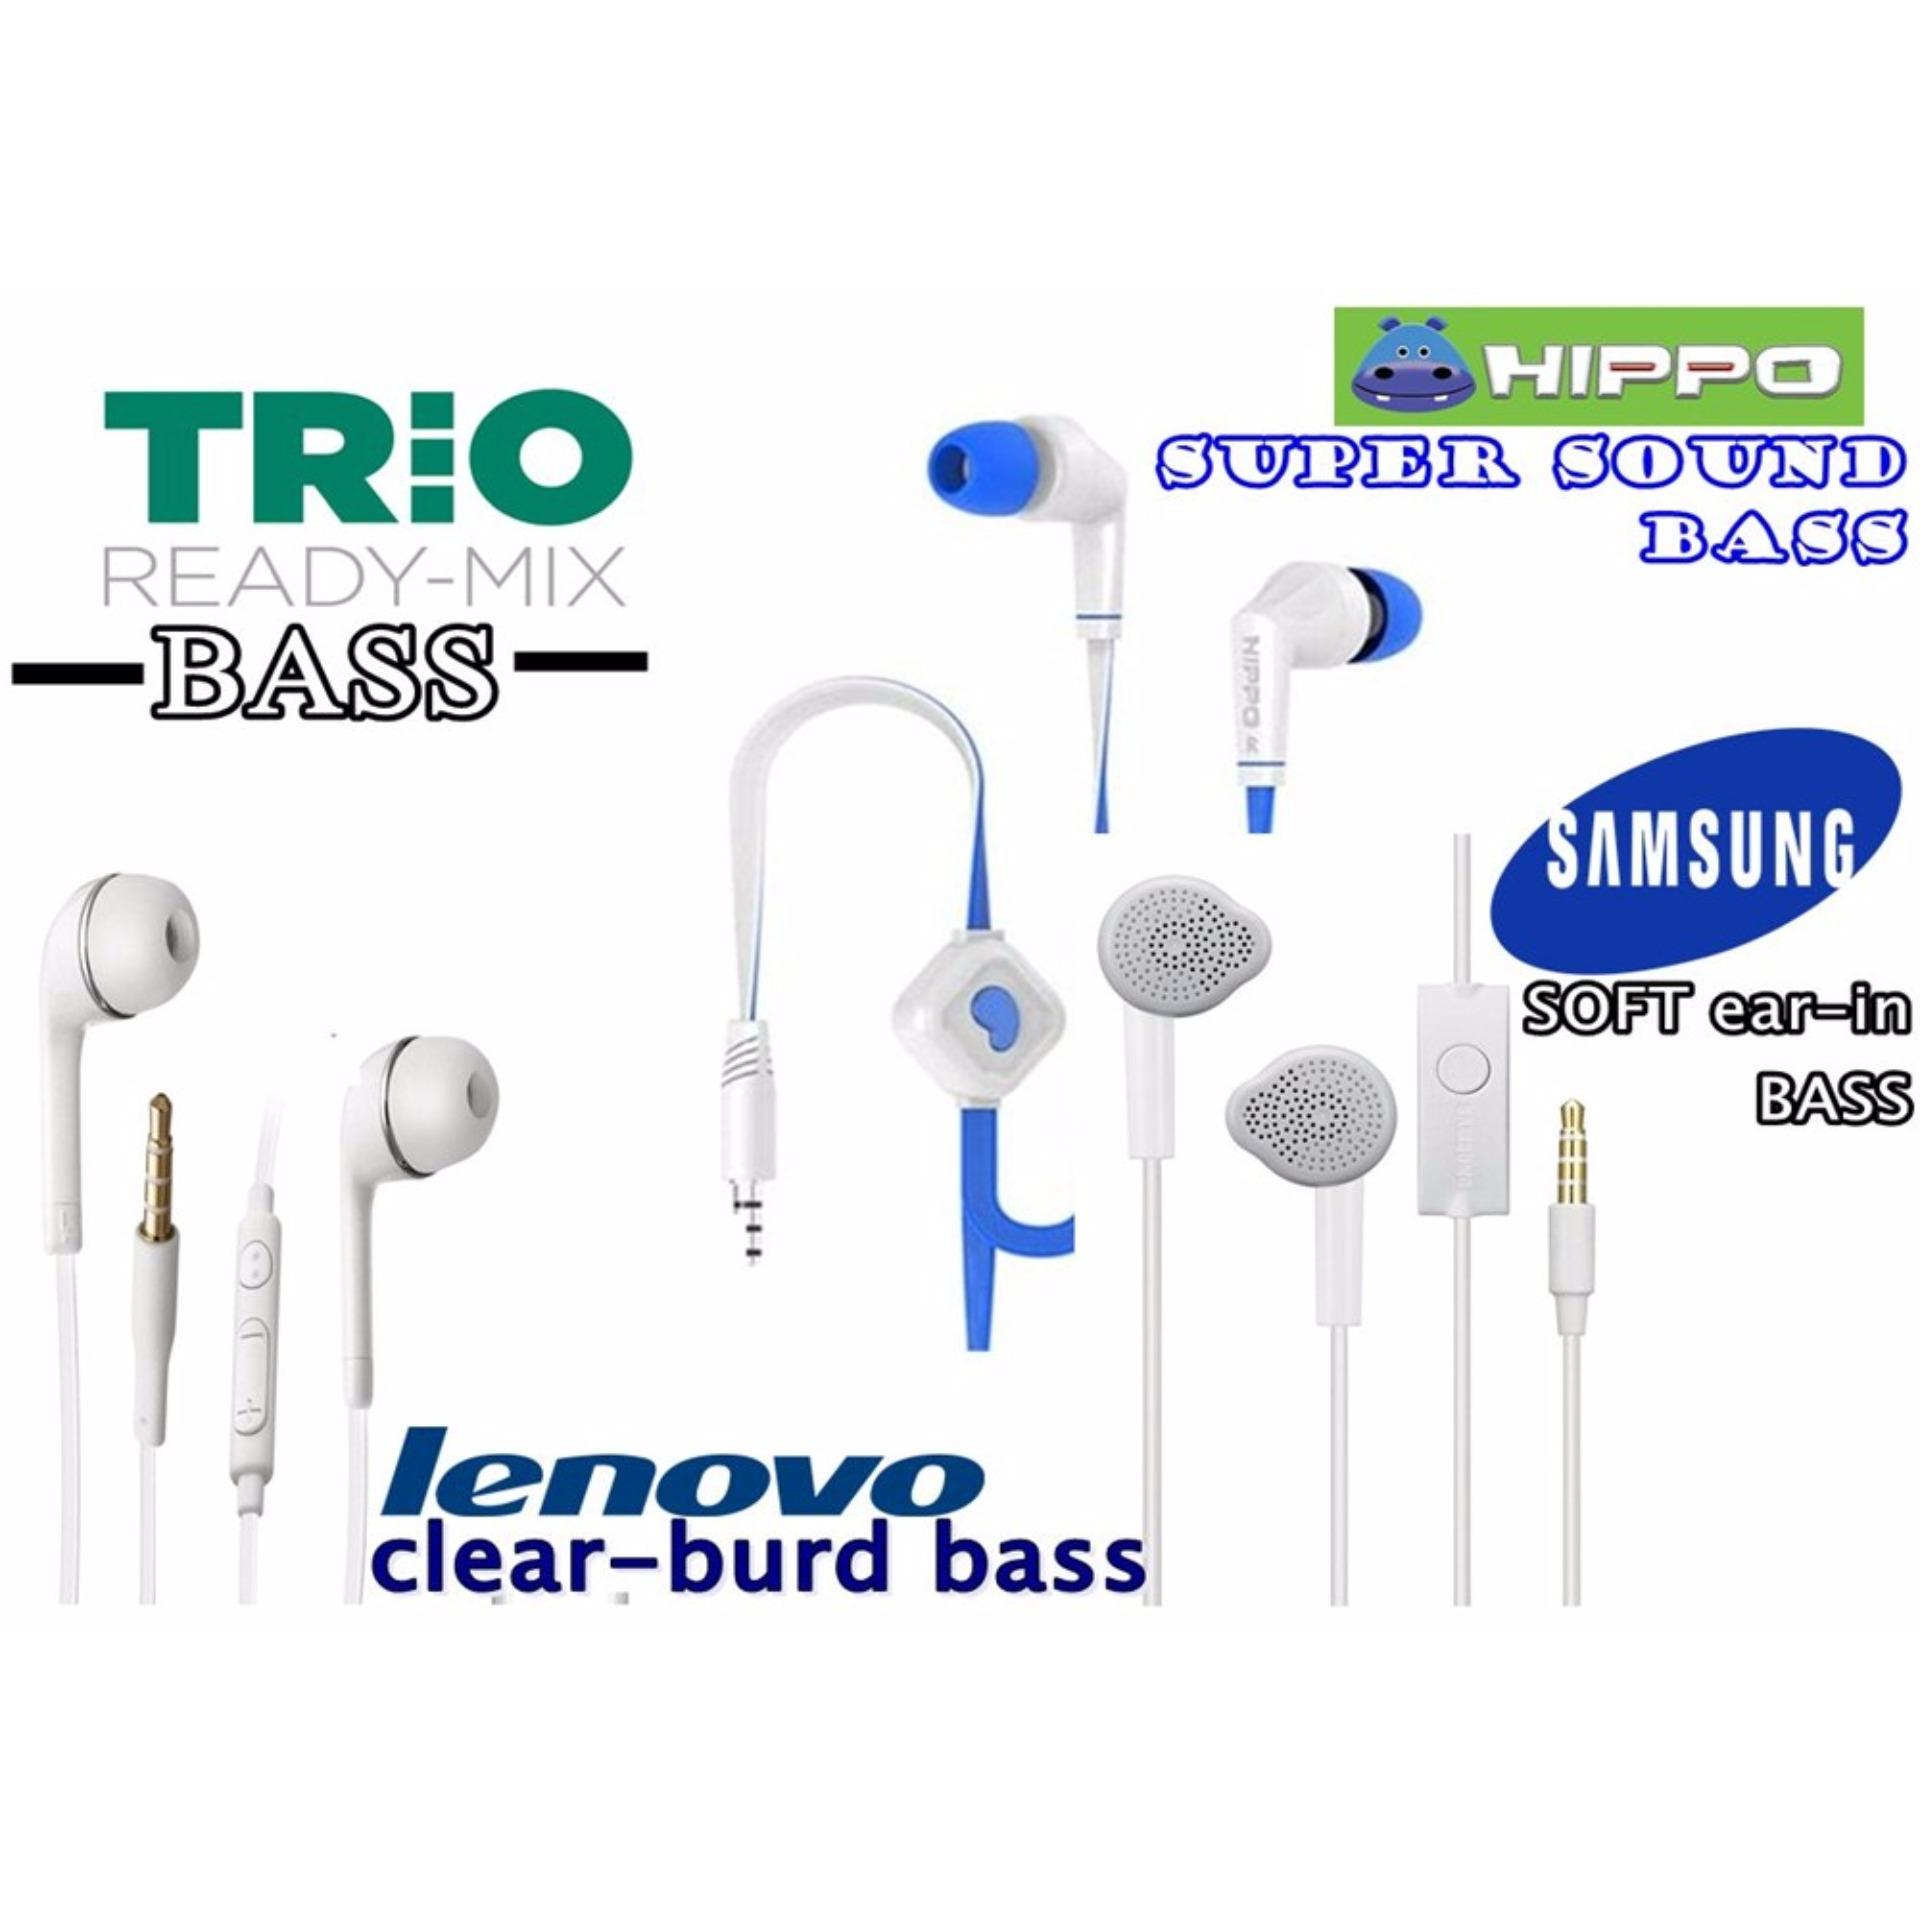 Harga Trio Handsfree Ready Bass Samsung Soft Bass Lenovo Claar In Bass Hippo Super Bass Asli